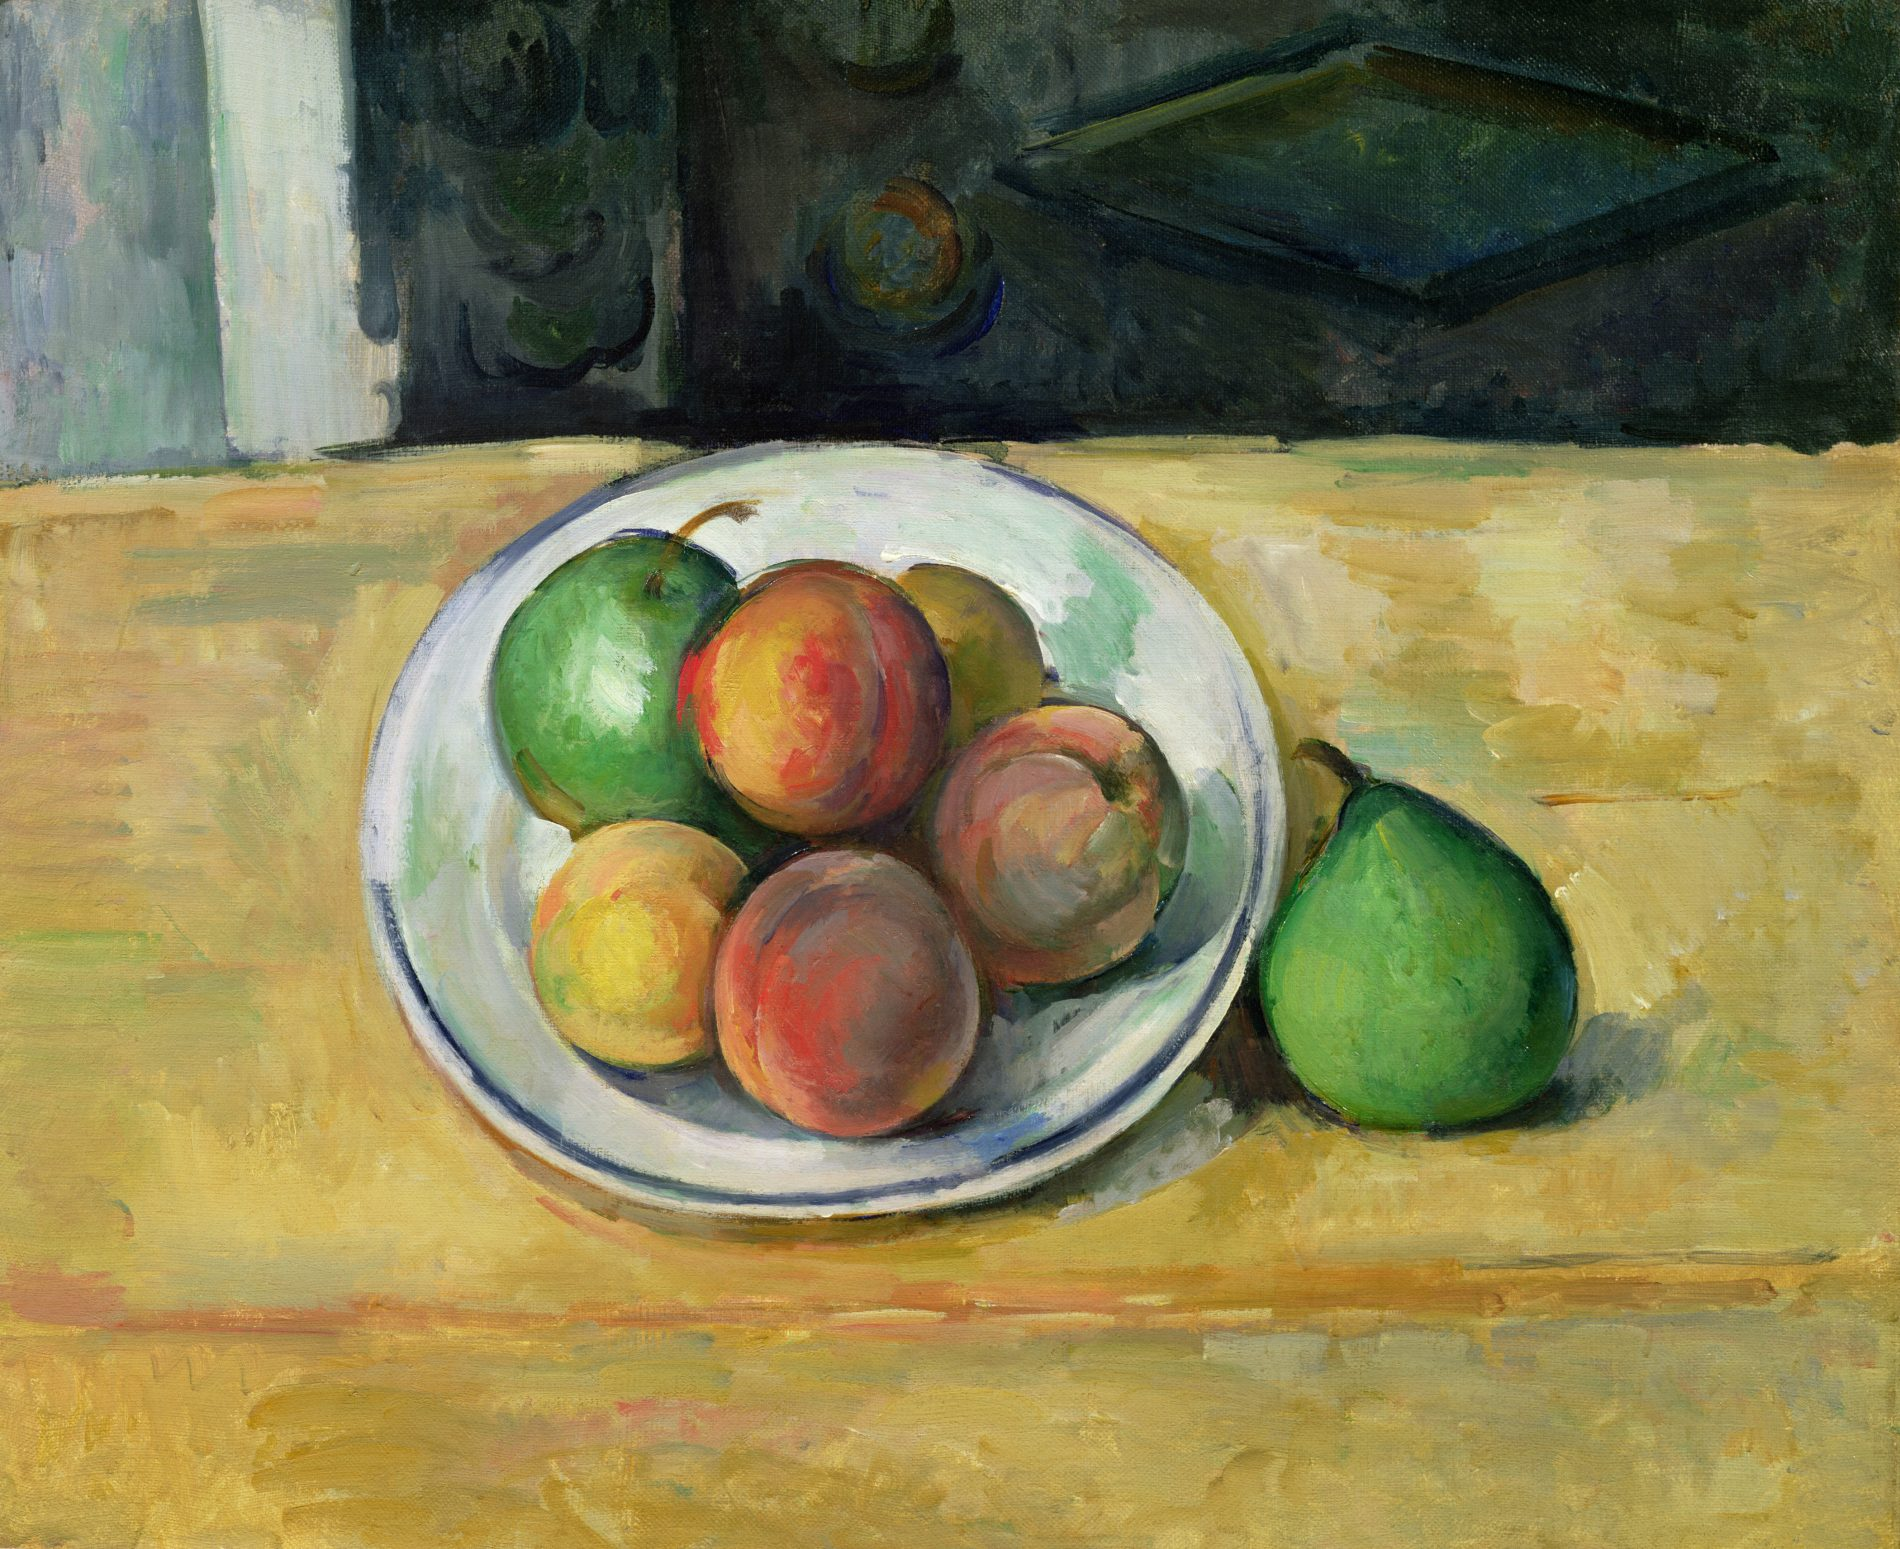 Nature morte de pêches et poires (Still life with Peaches and Pears), about 1885-87, Paul Cézanne. Oil on Canvas.